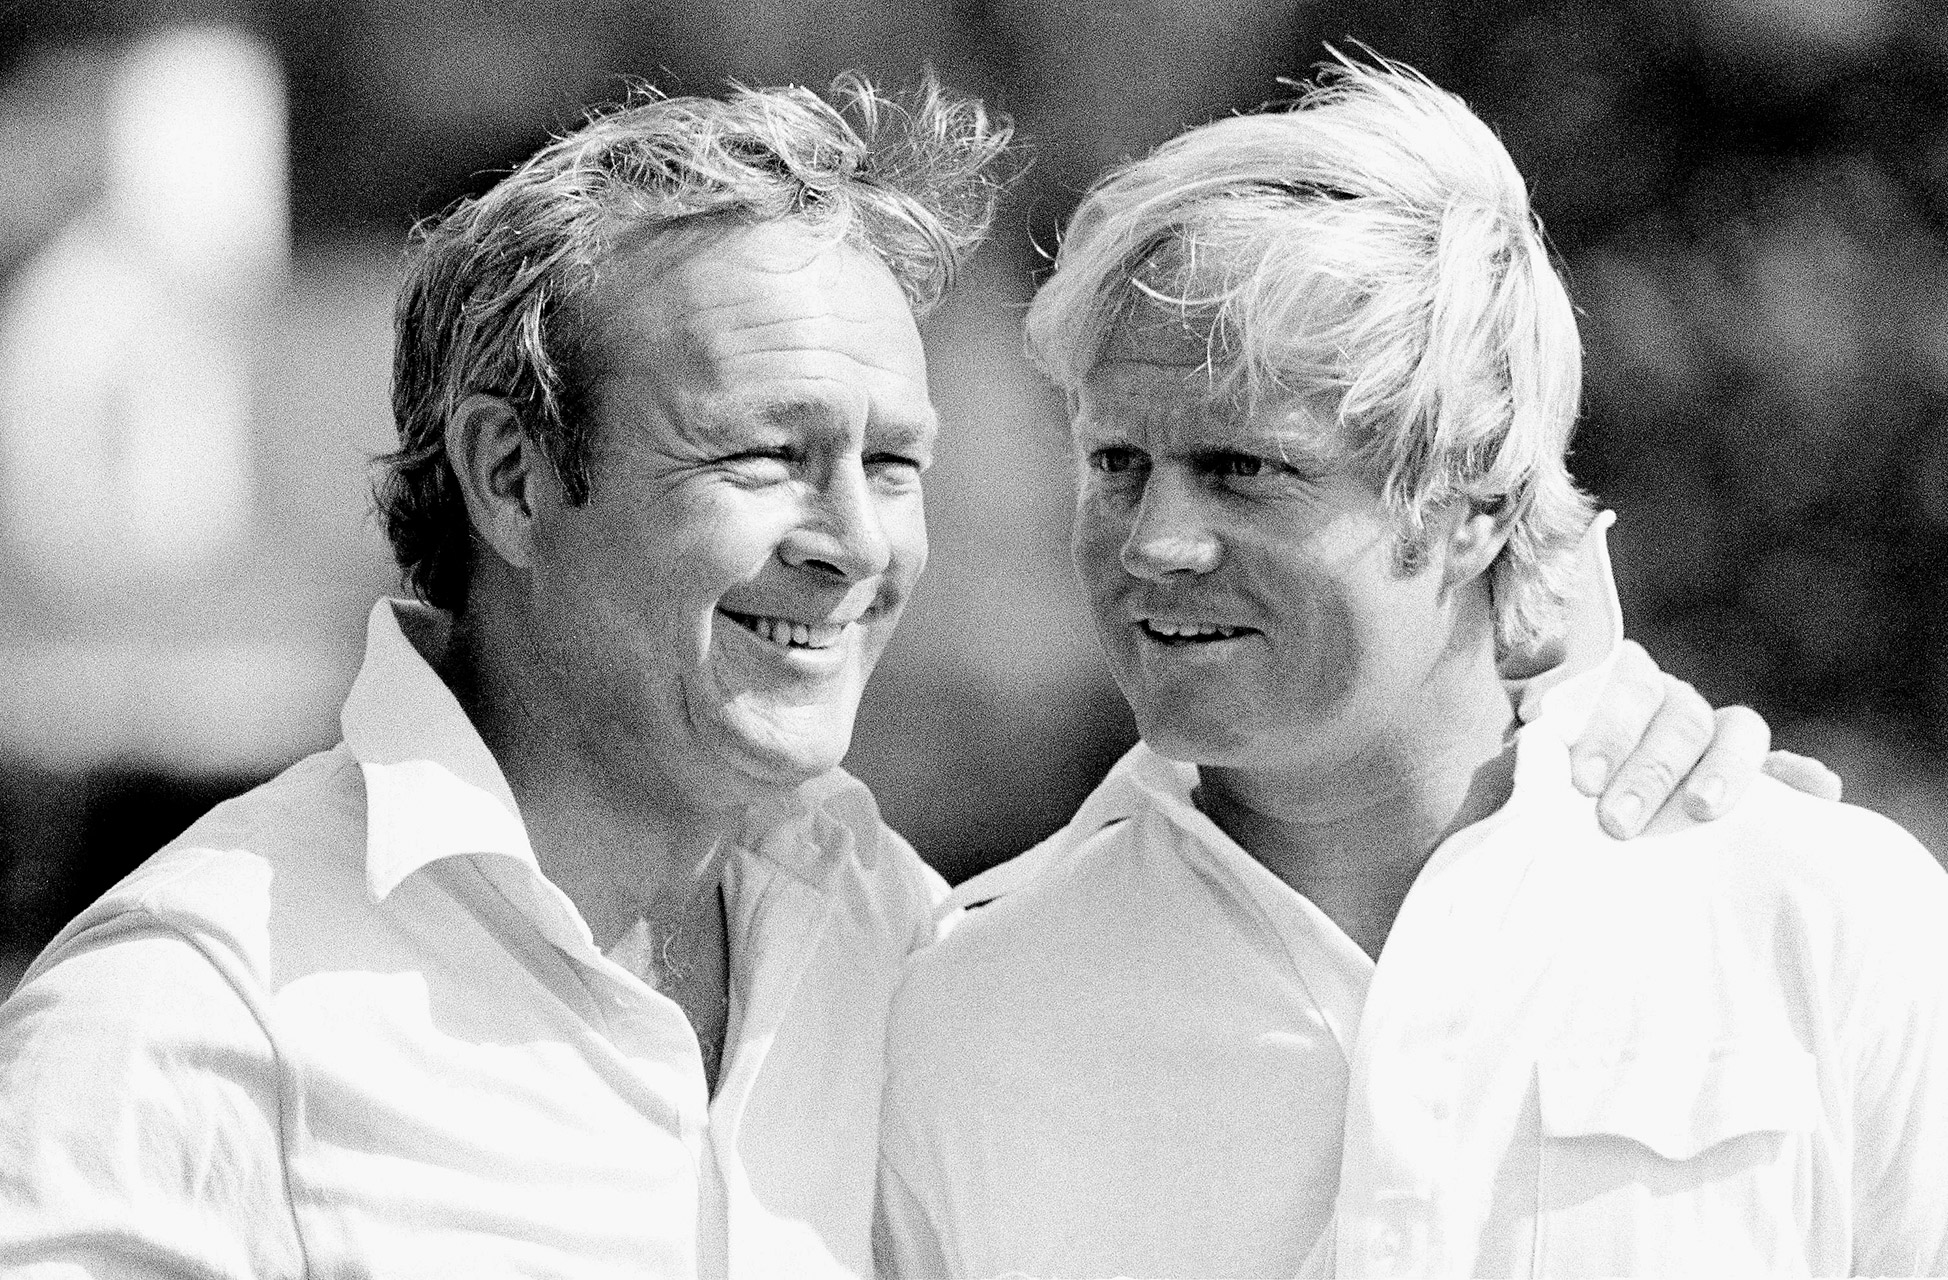 Palmer and Nicklaus 1973